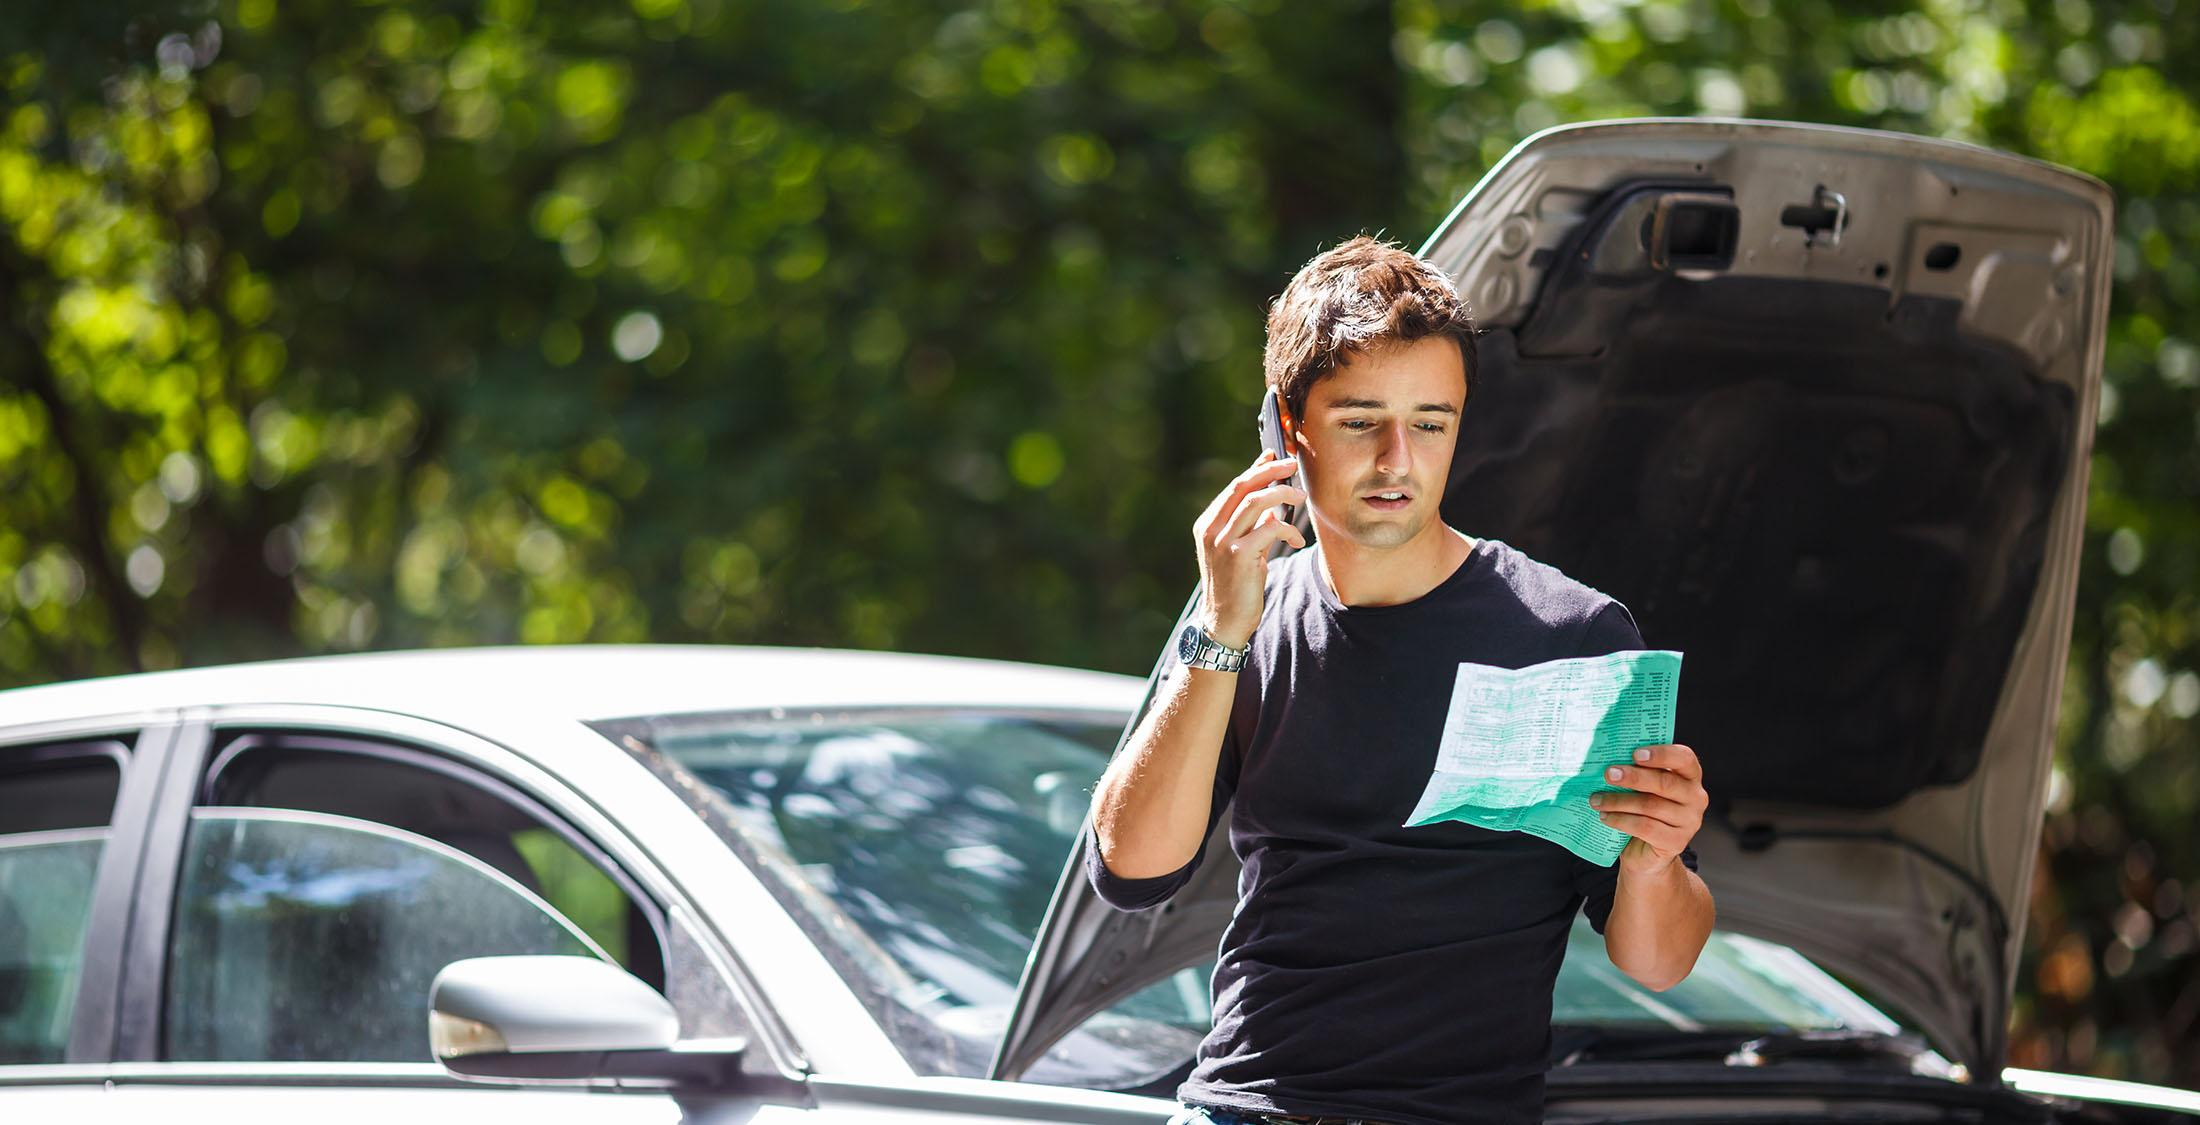 man on phone in front of car